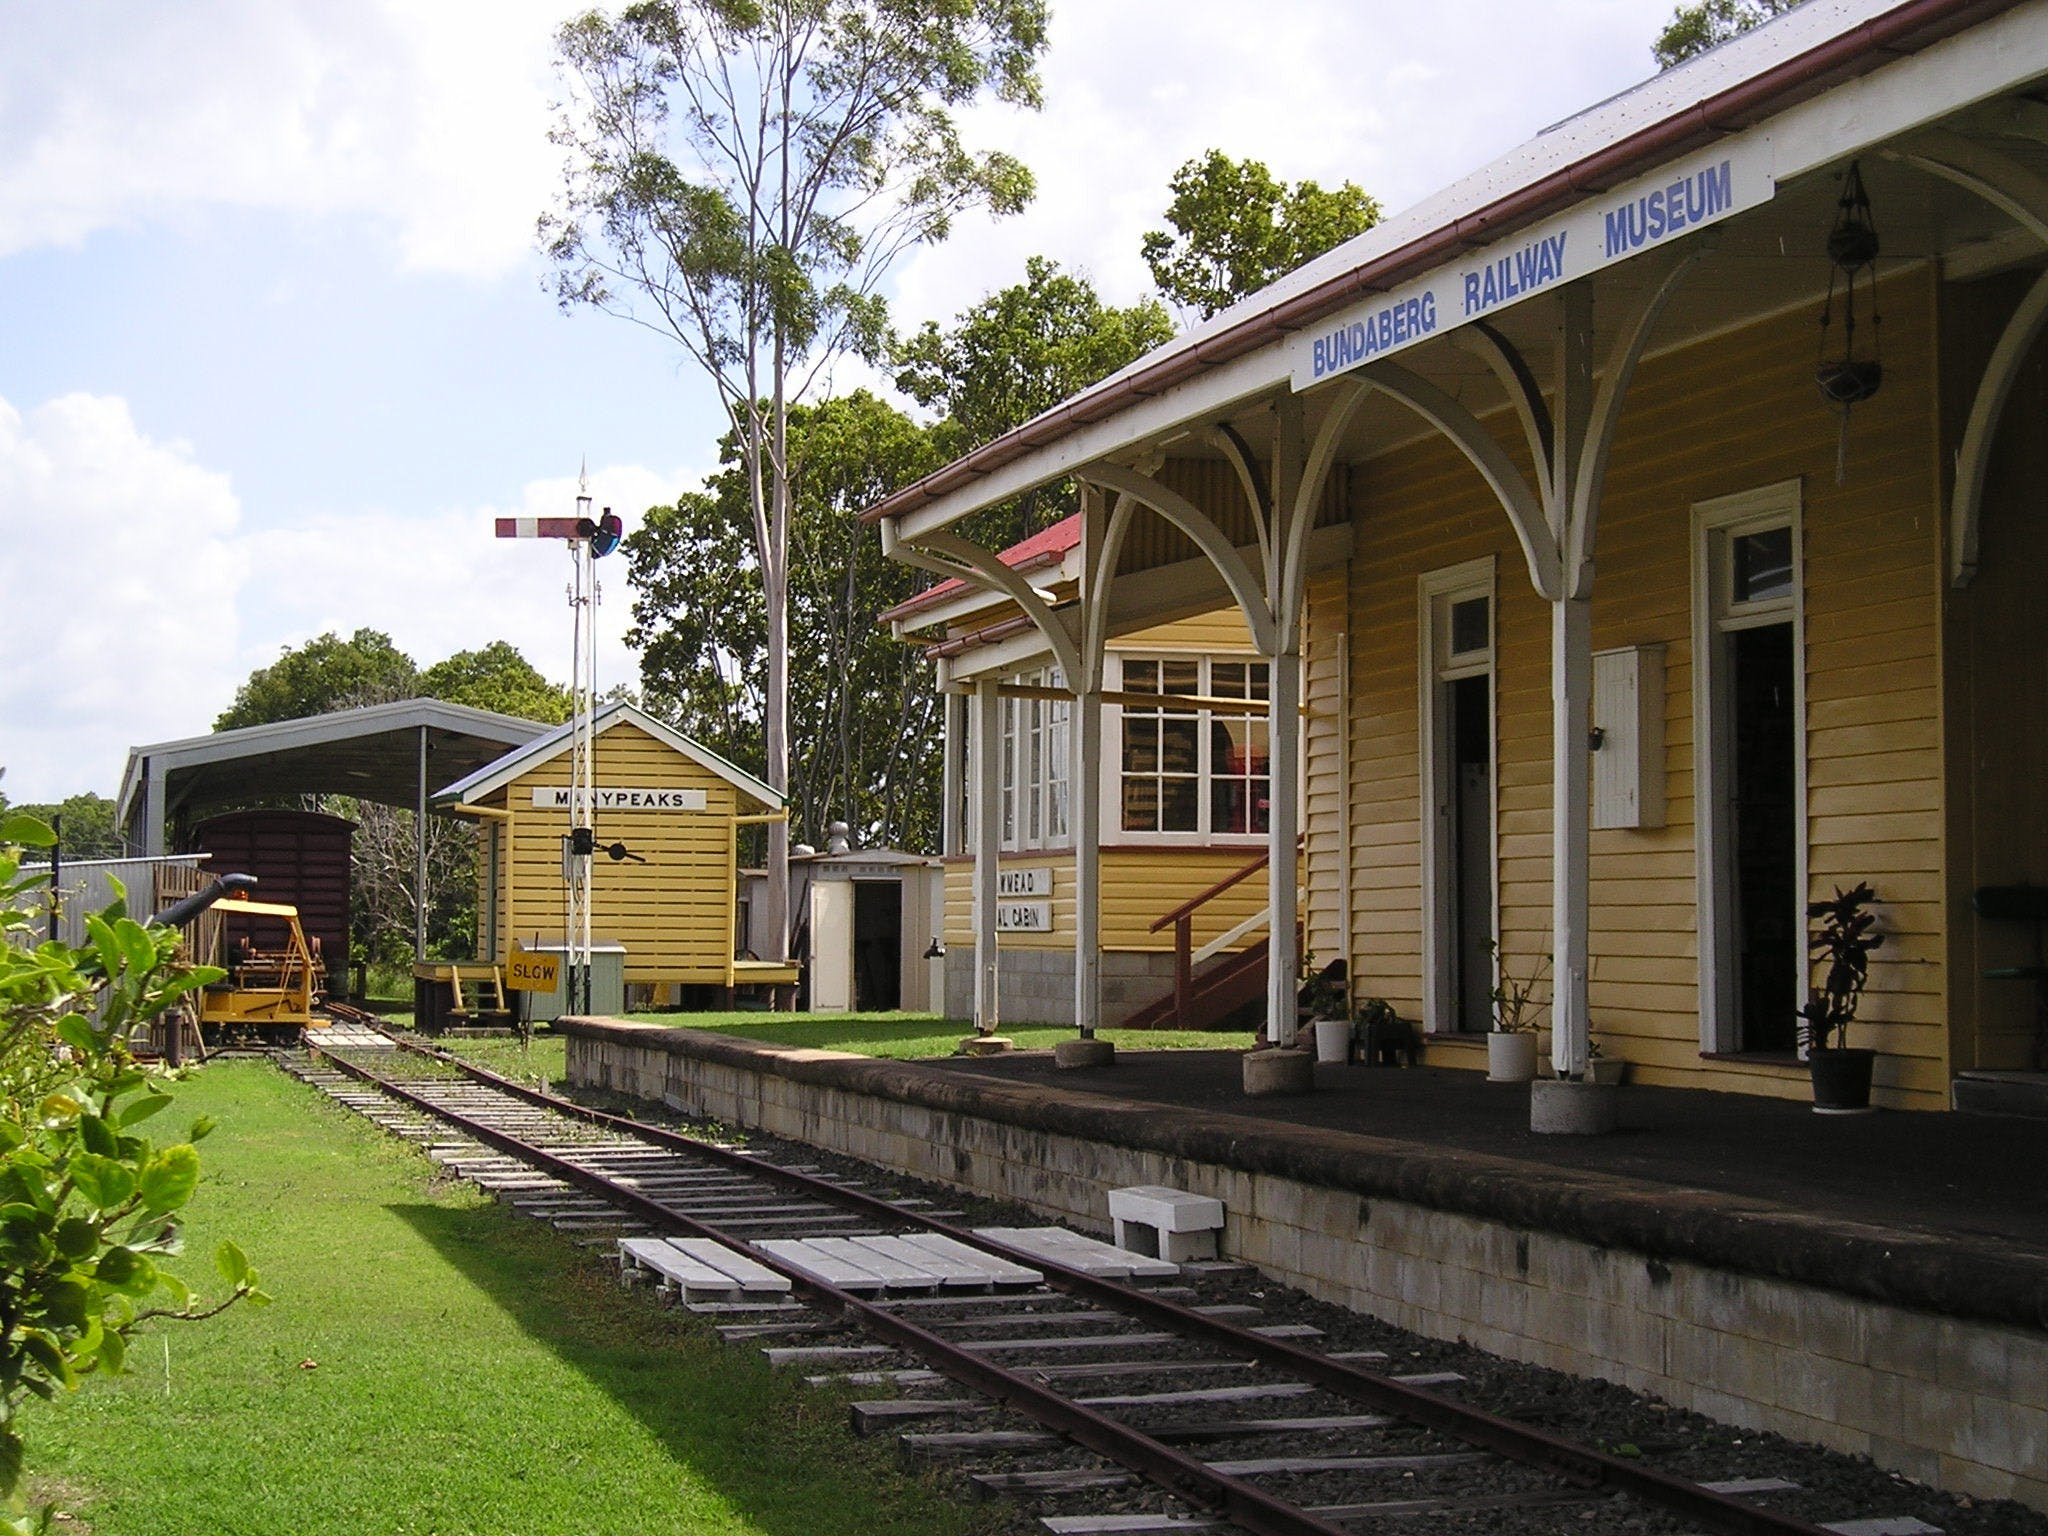 Bundaberg Railway Museum - Lightning Ridge Tourism